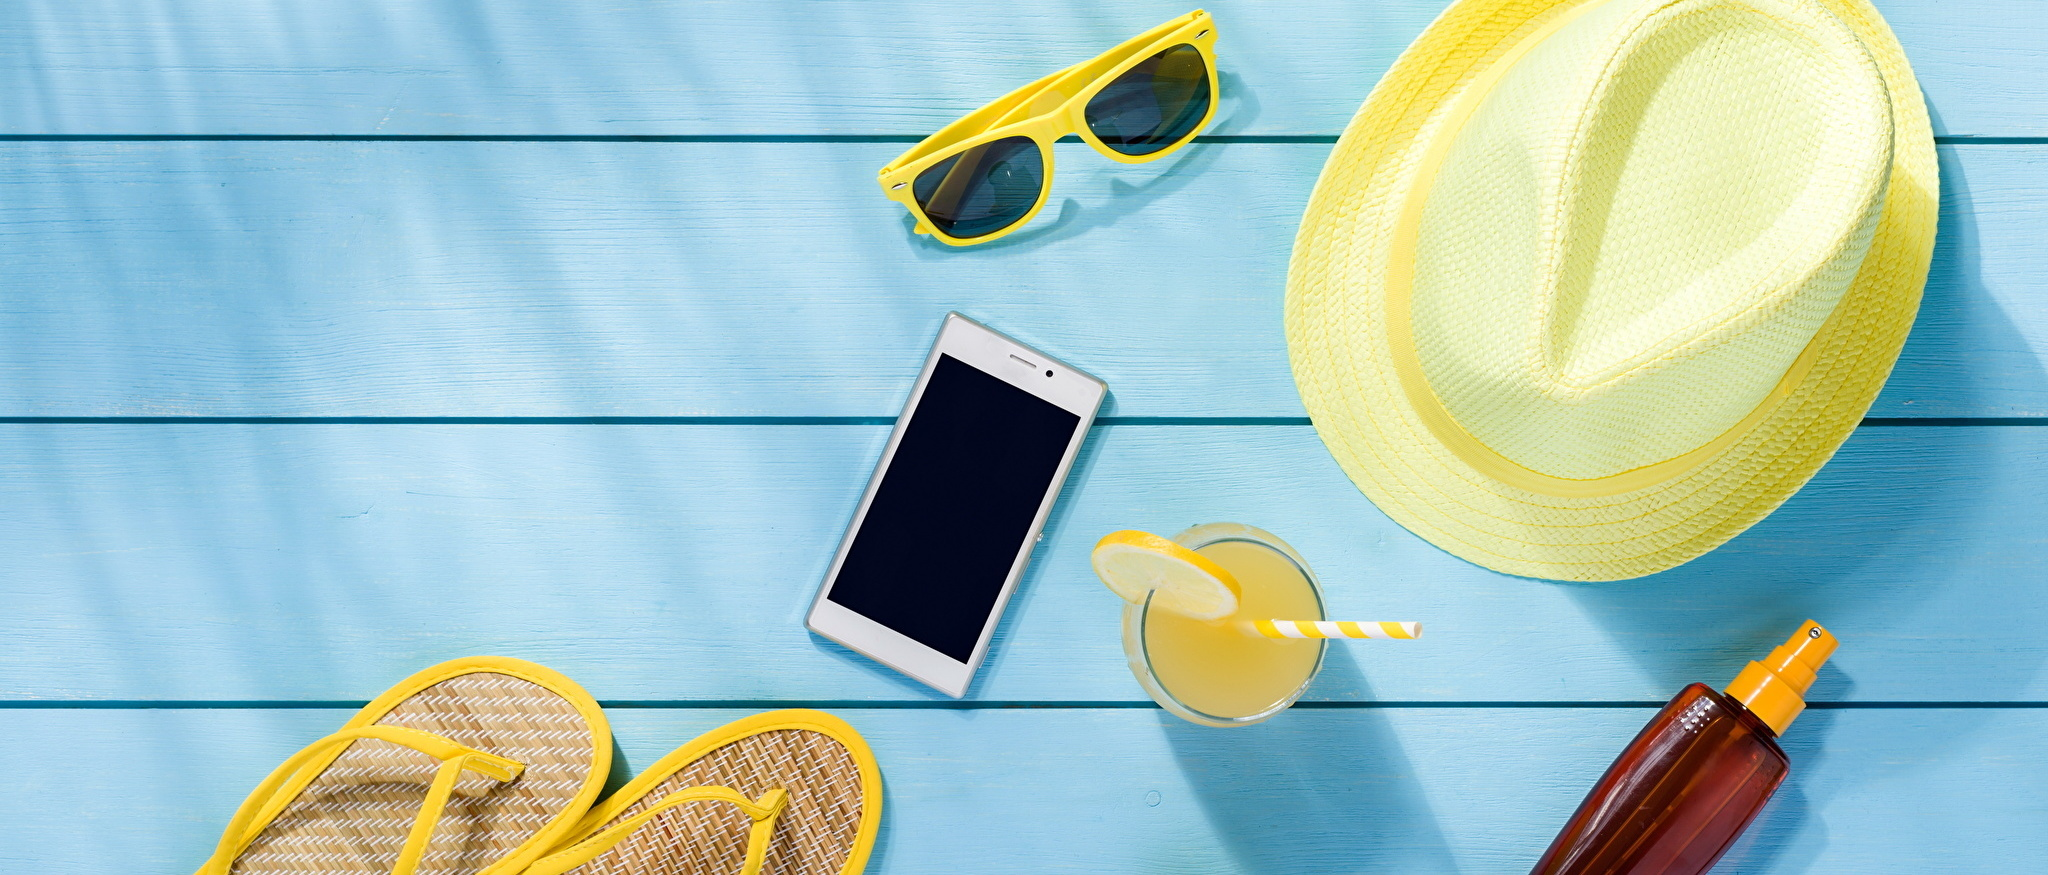 5 smartphone tips for your summer travels